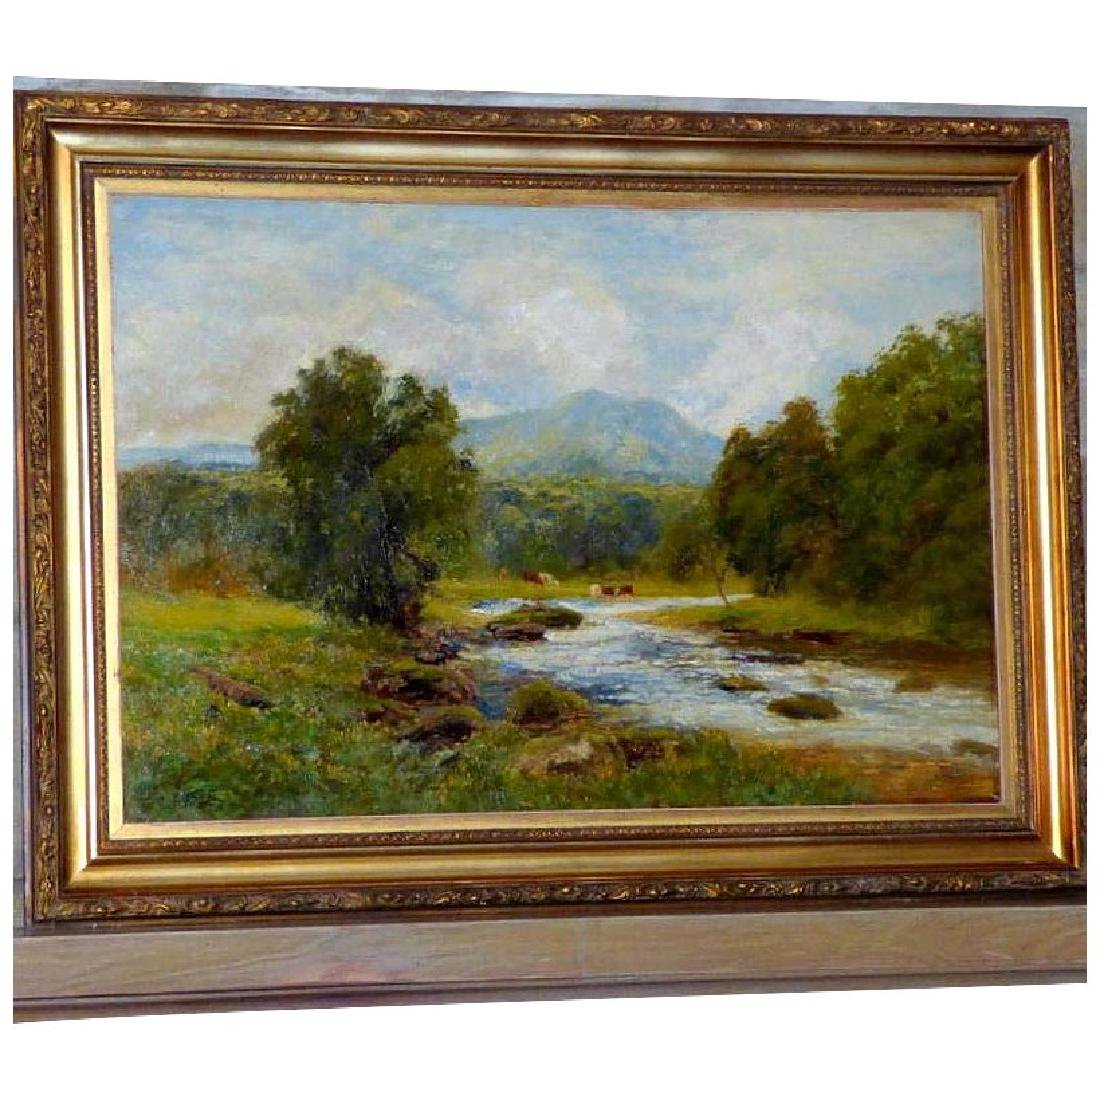 Antique Large Bucolic River Landscape with Cattle, by